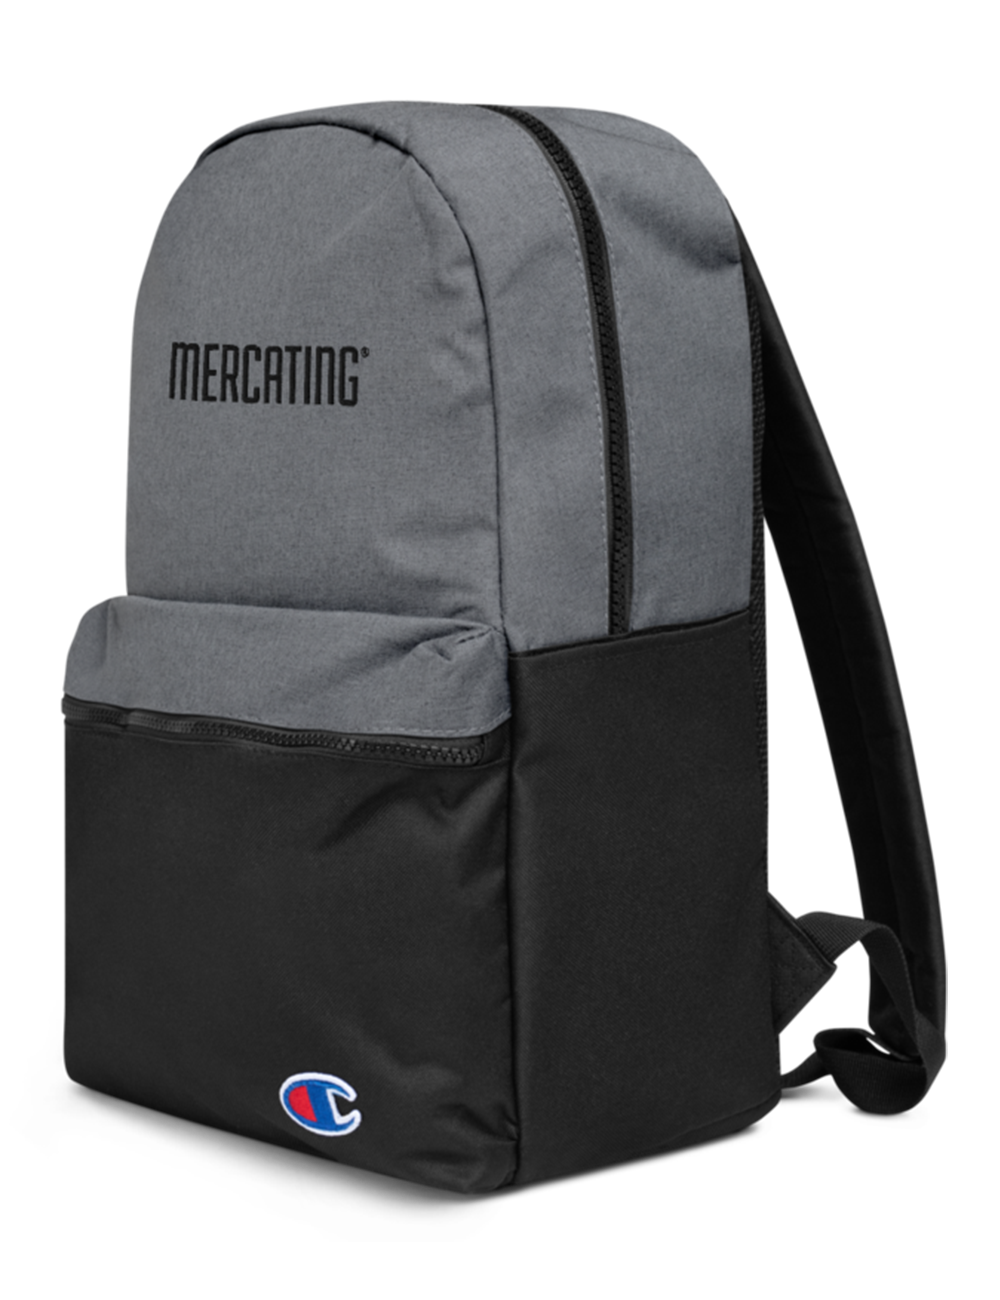 Embroidered Champion Backpack - Mercating | Business solutions to achieve more with less